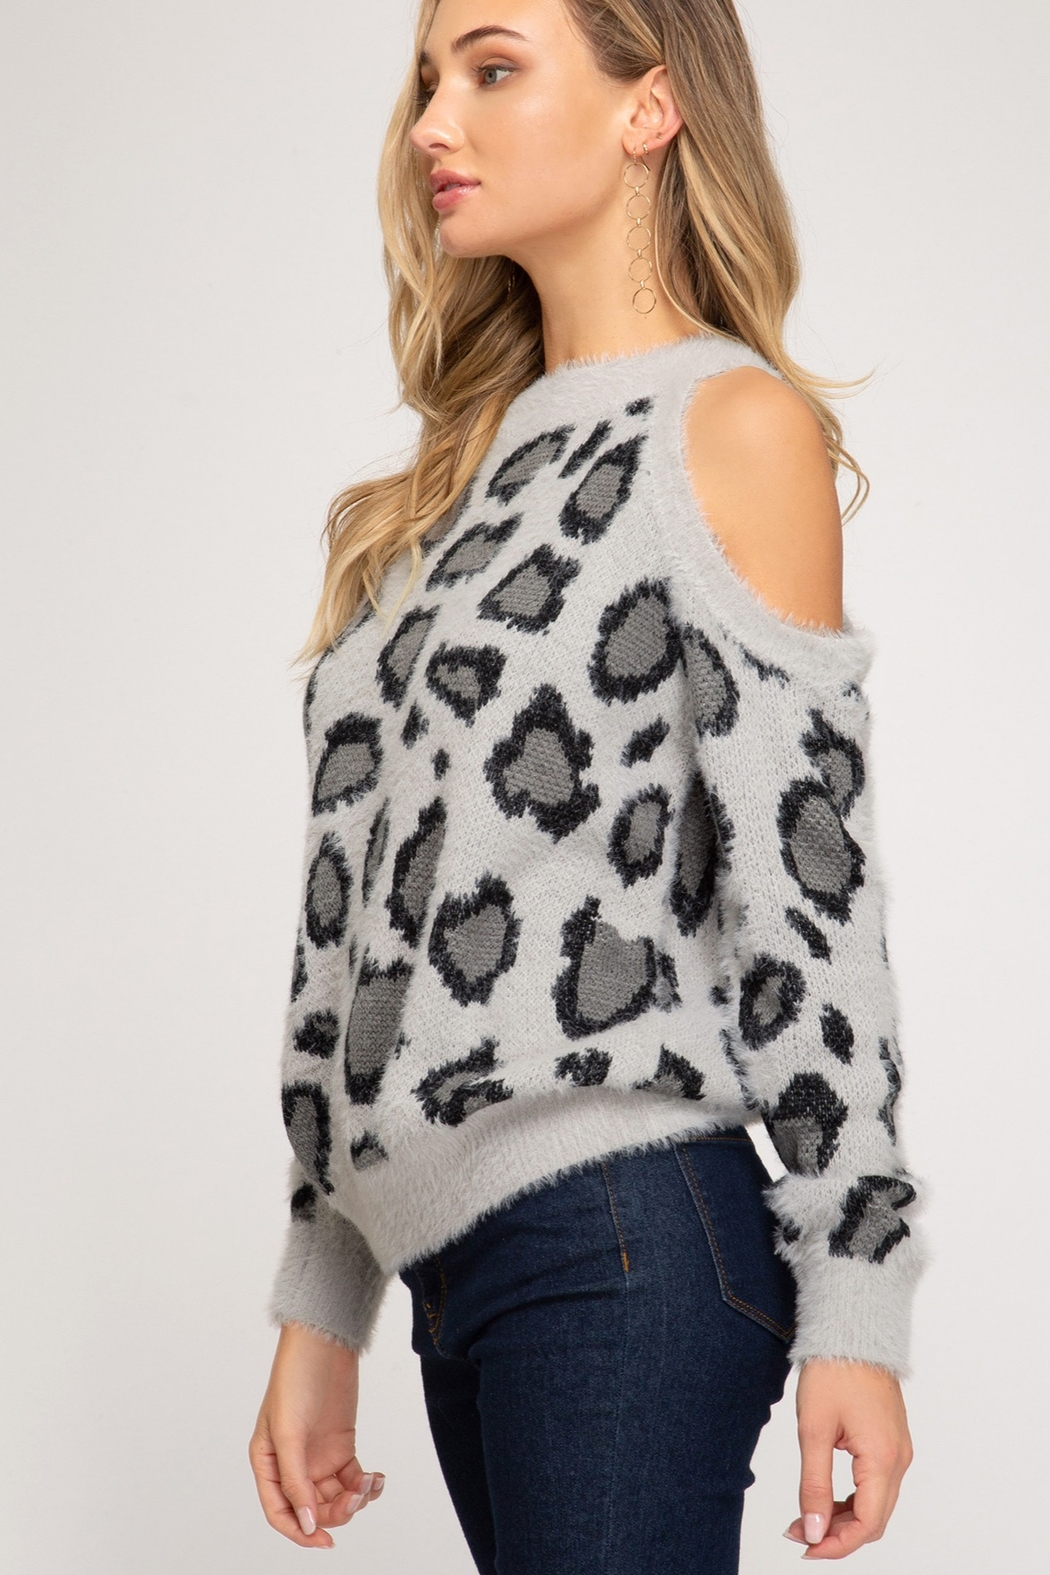 She & Sky  LONG SLEEVE COLD SHOULDER LEOPARD PRINT FUZZY KNIT SWEATER TOP - Front Full Image